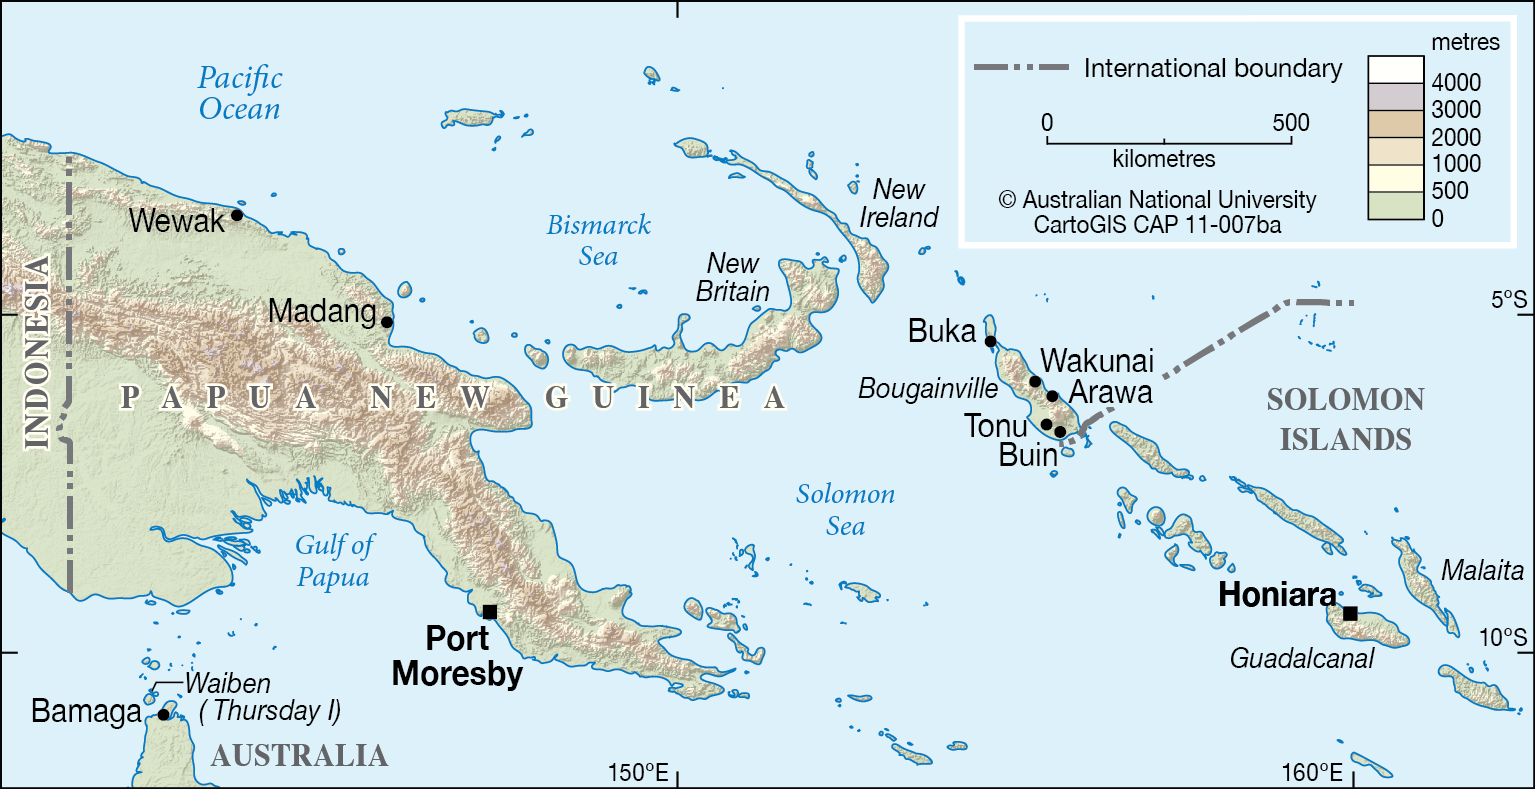 PNG to the Solomon Islands - CartoGIS Services Maps Online - ANU